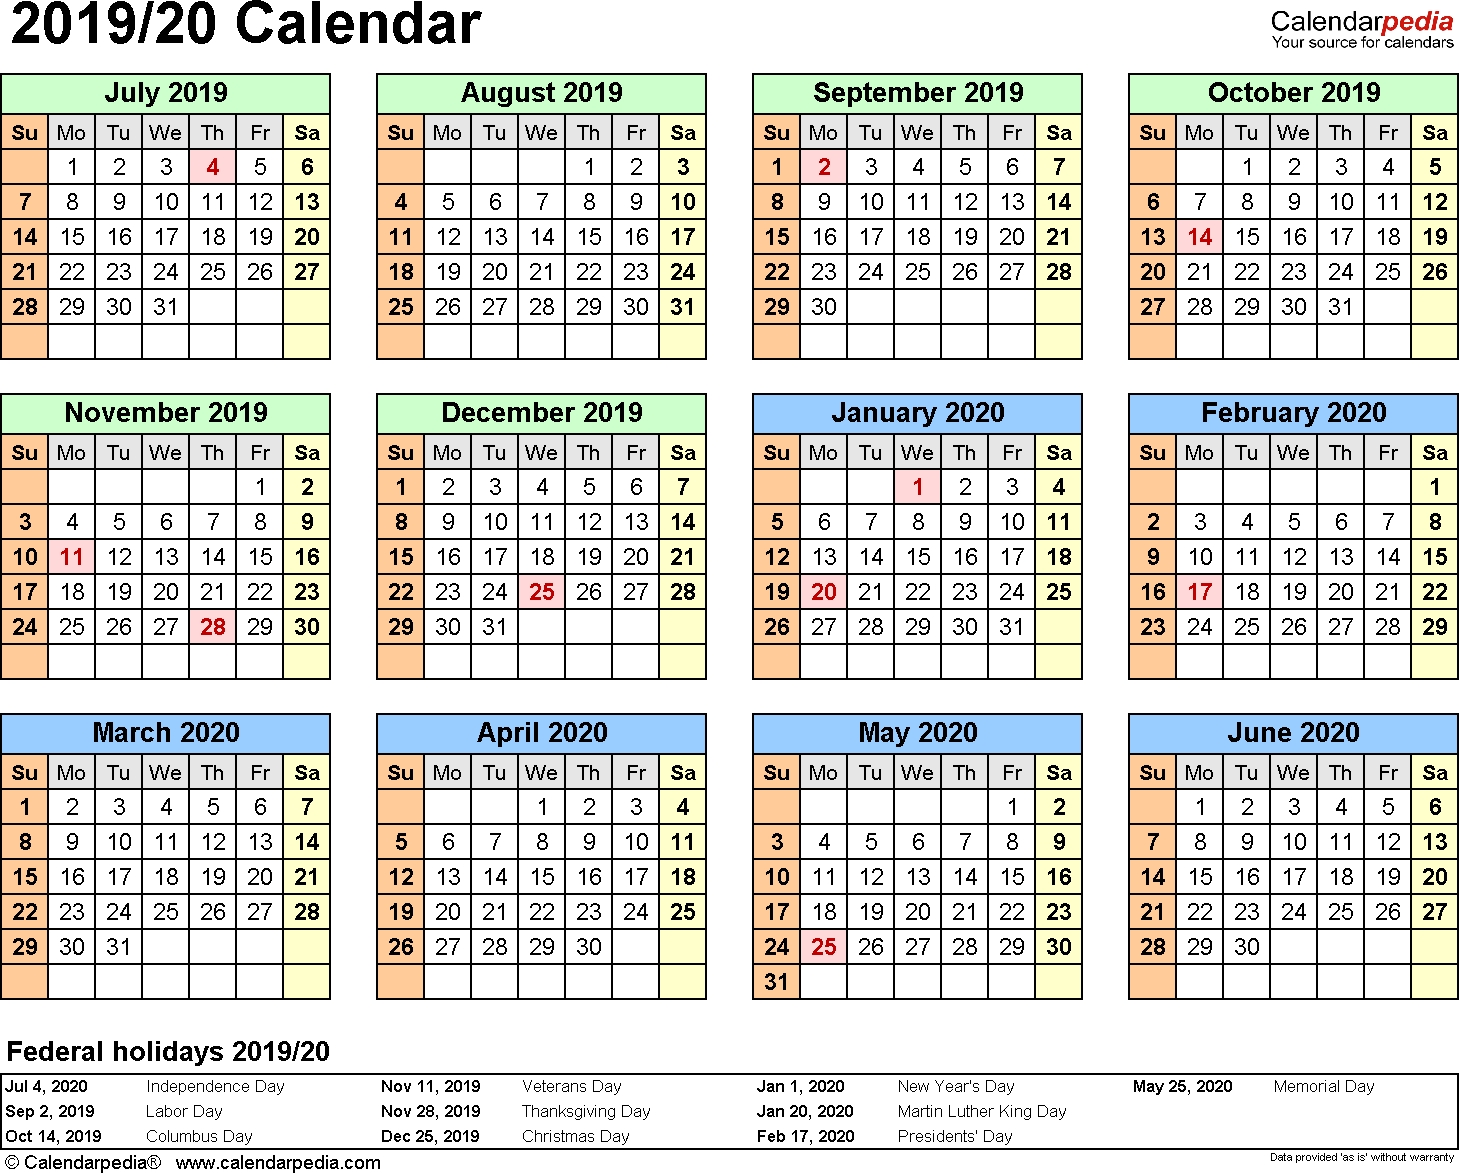 Split Year Calendar 2019/20 (July To June) - Word Templates within One Page 2019-2020 Calendar